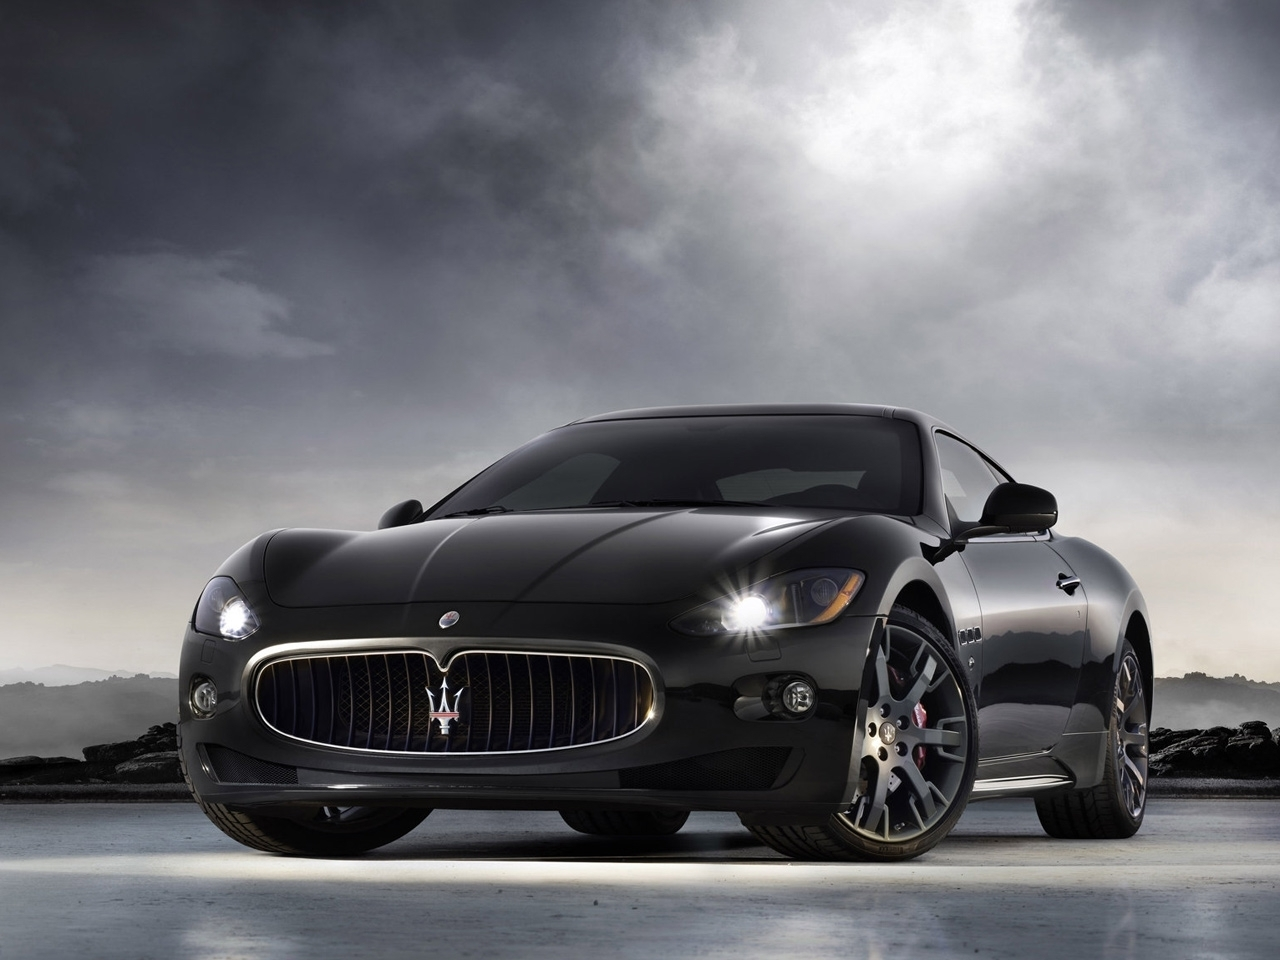 40921 download wallpaper Transport, Auto, Maserati screensavers and pictures for free